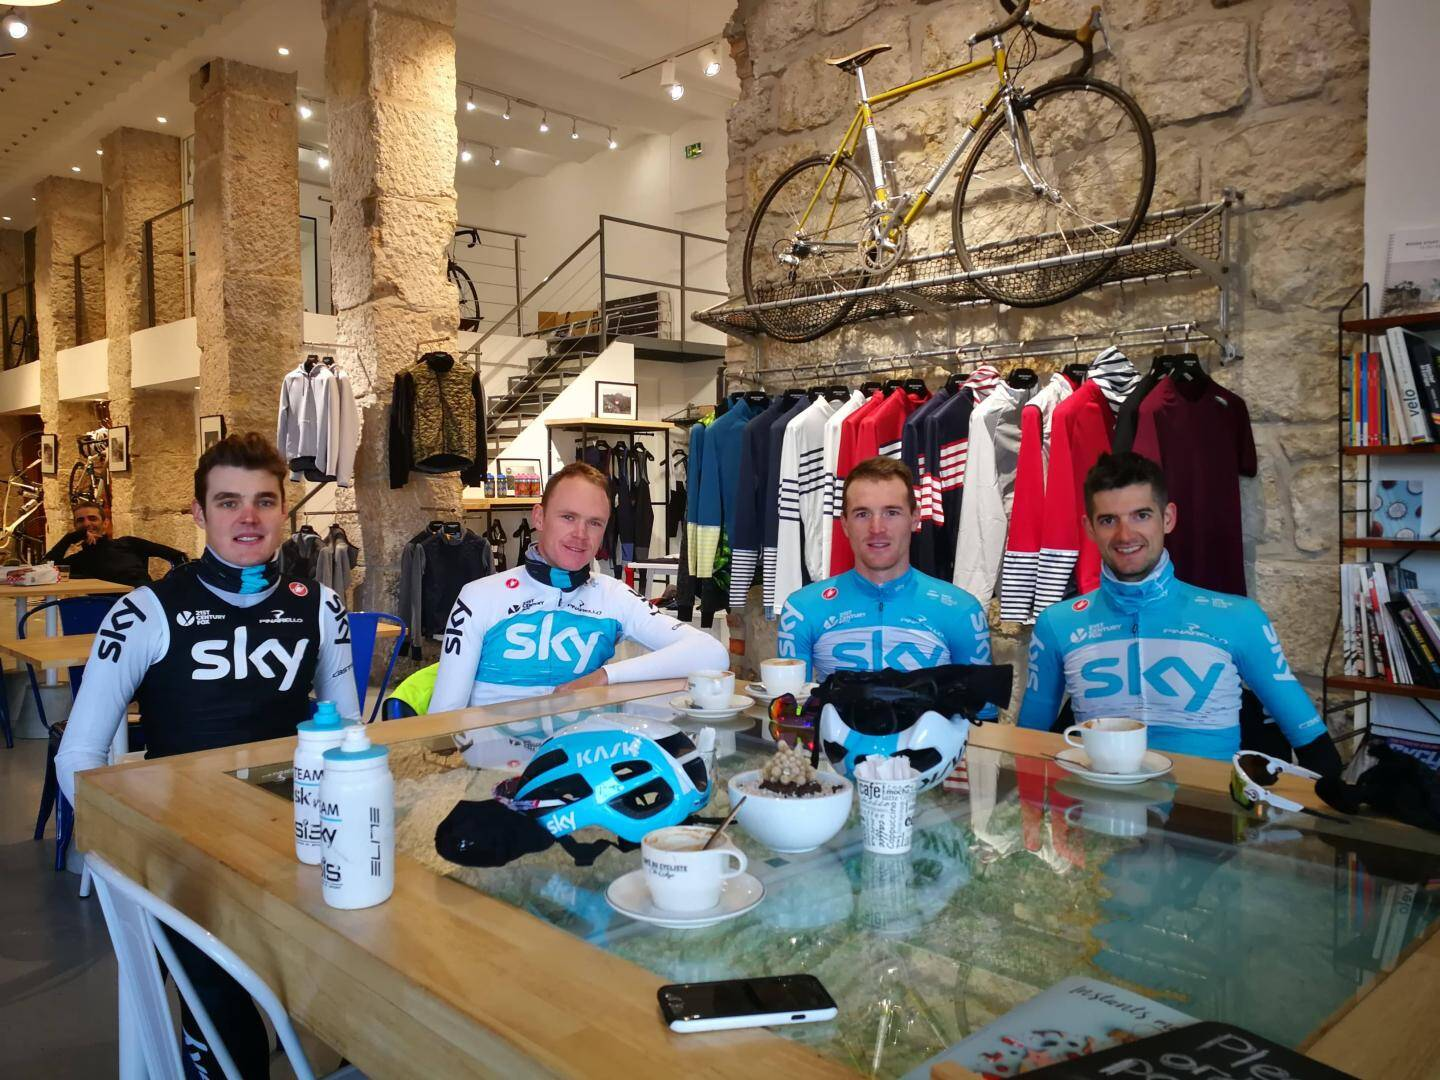 Chris Froome, Salvatore Puccio et Wout Poels.